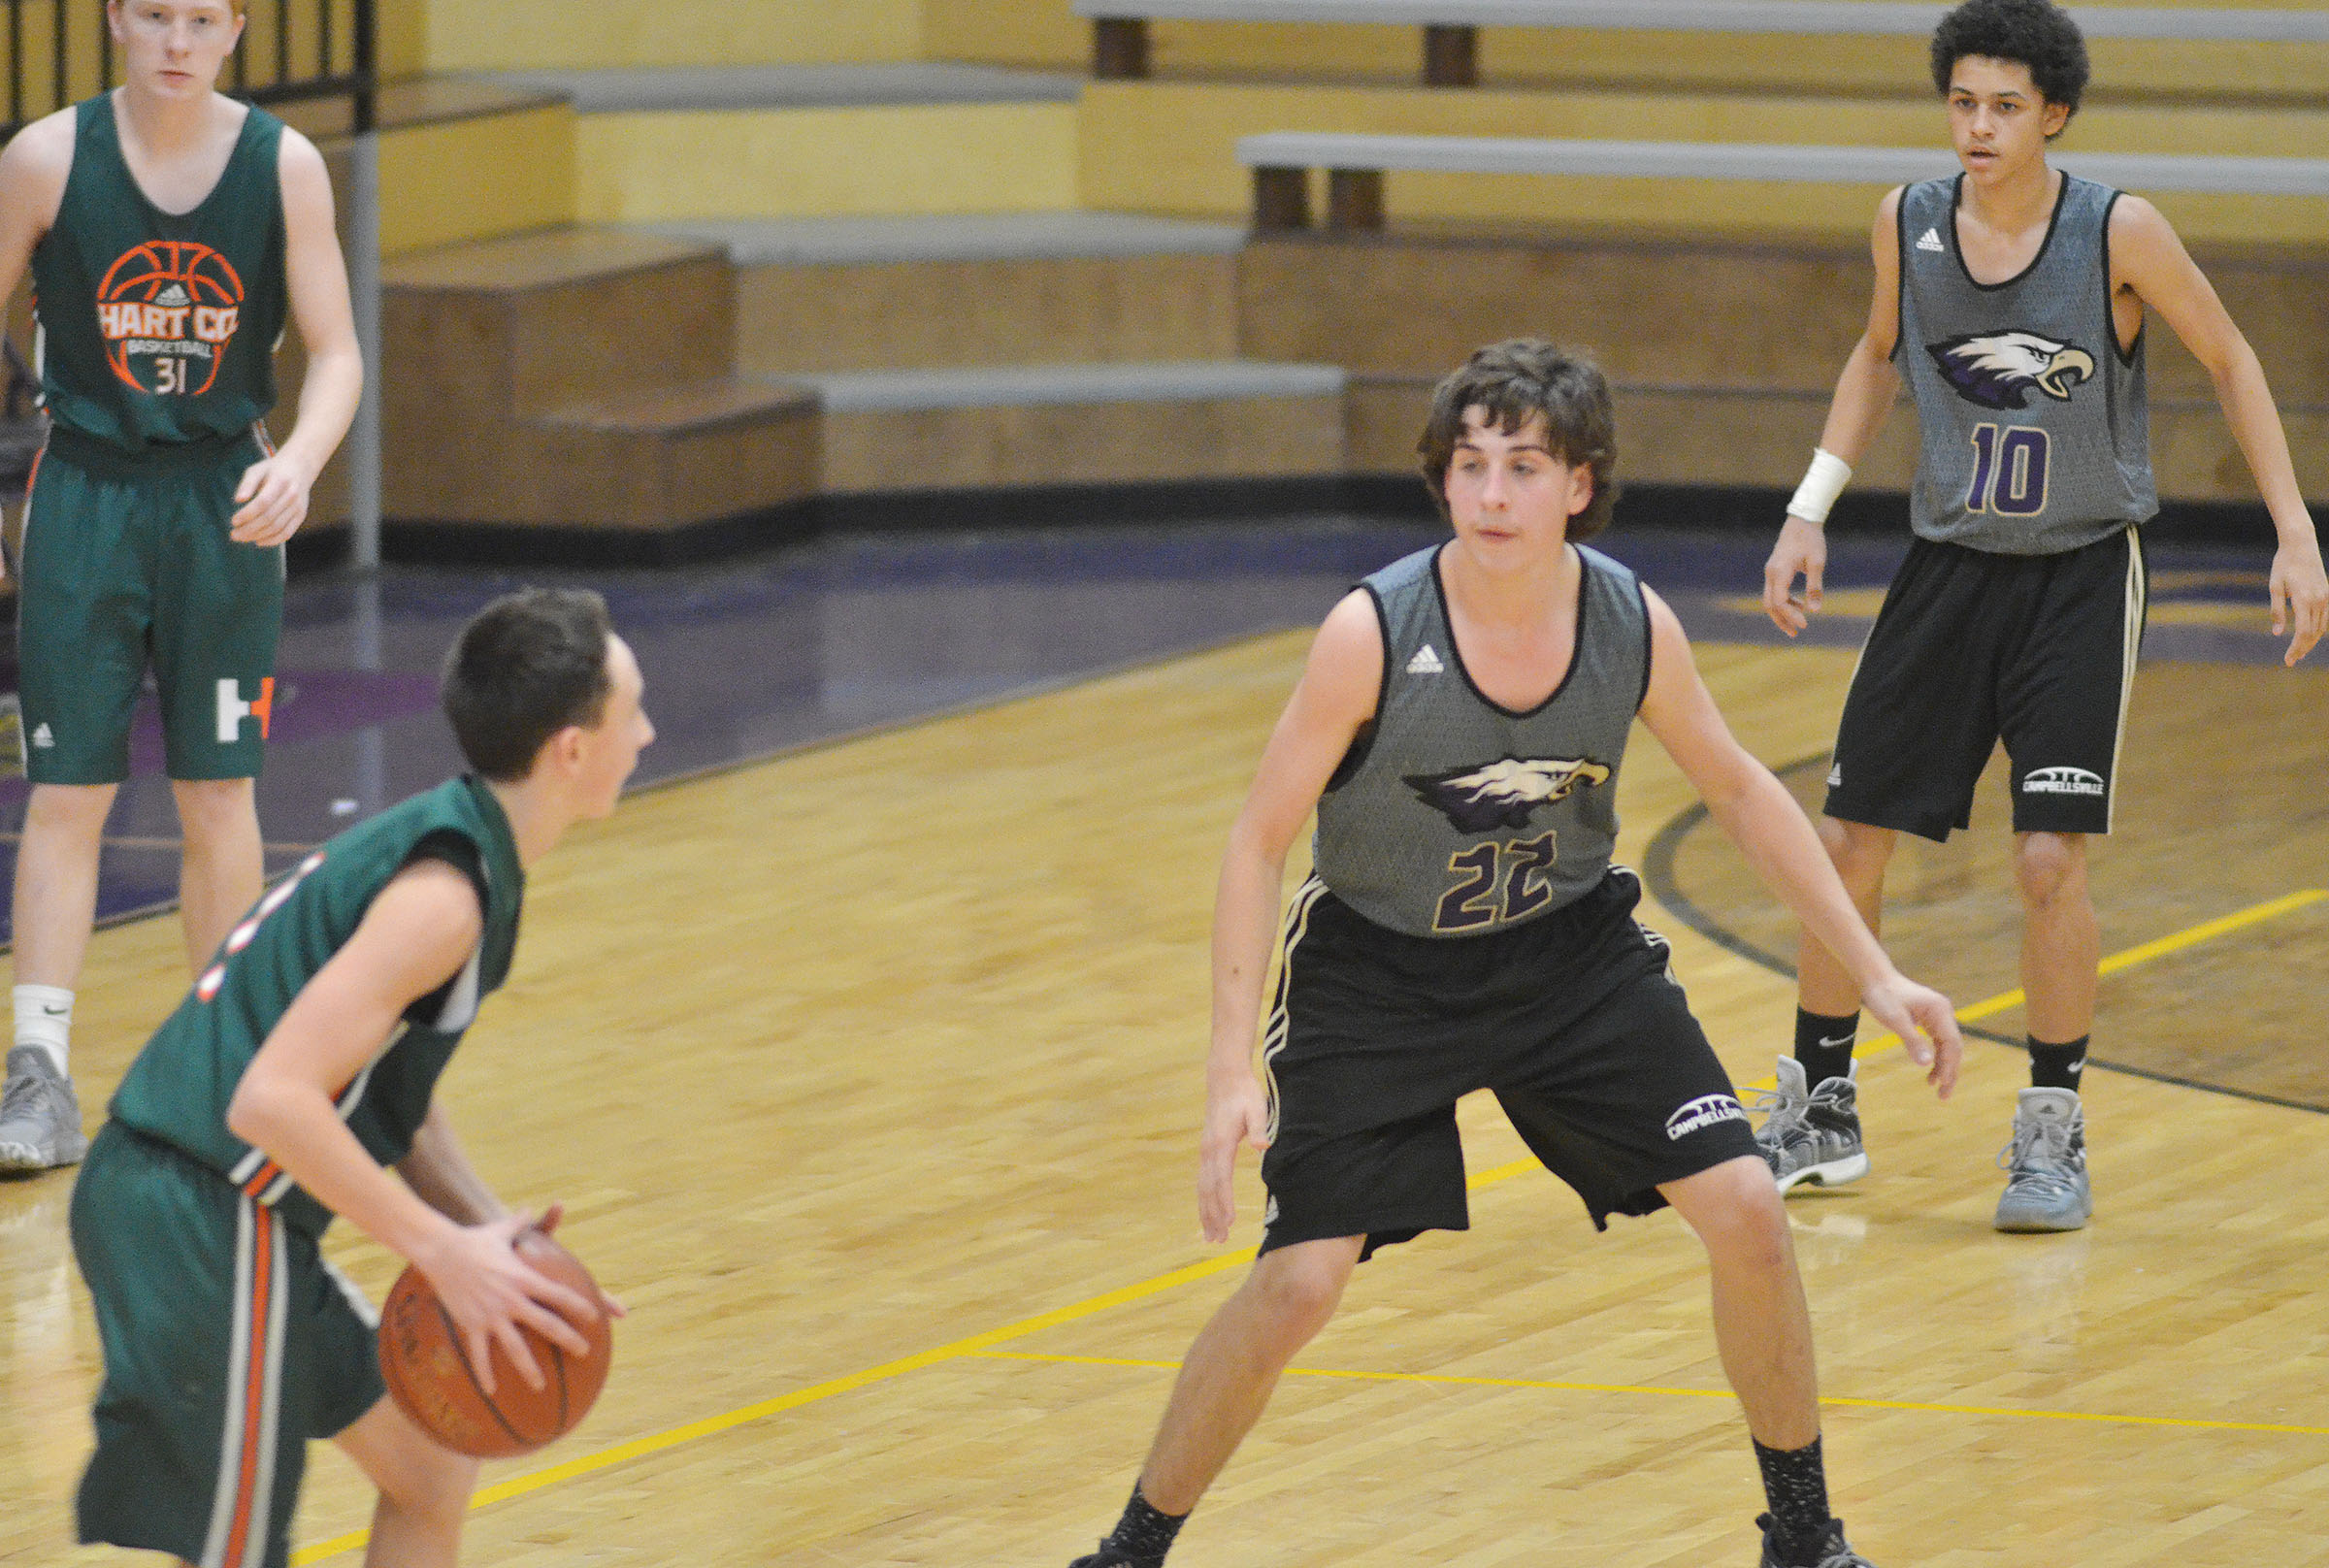 Campbellsville Middle School eighth-grader John Orberson plays defense.